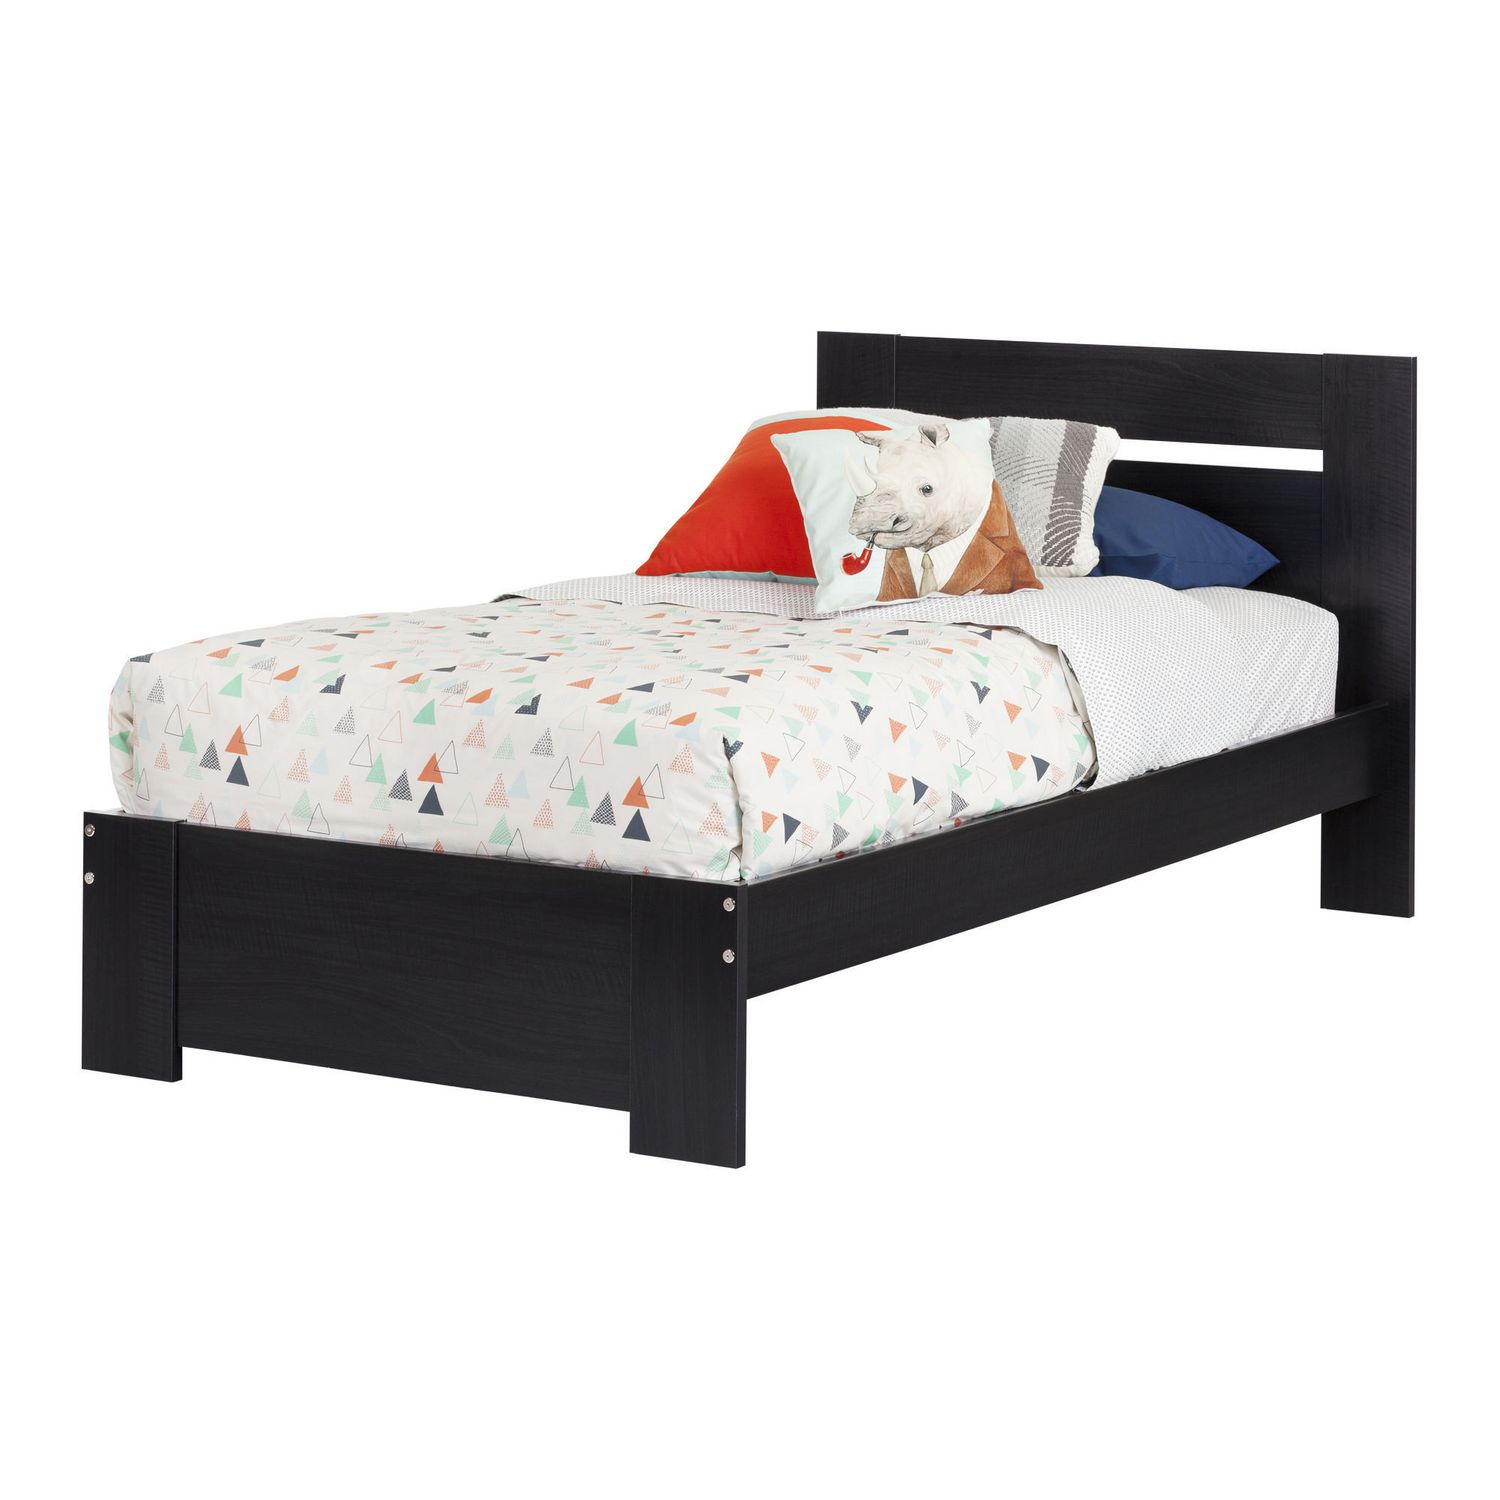 ideas single view ikea girls teenage bed beds l frames twin larger bedroom kids for